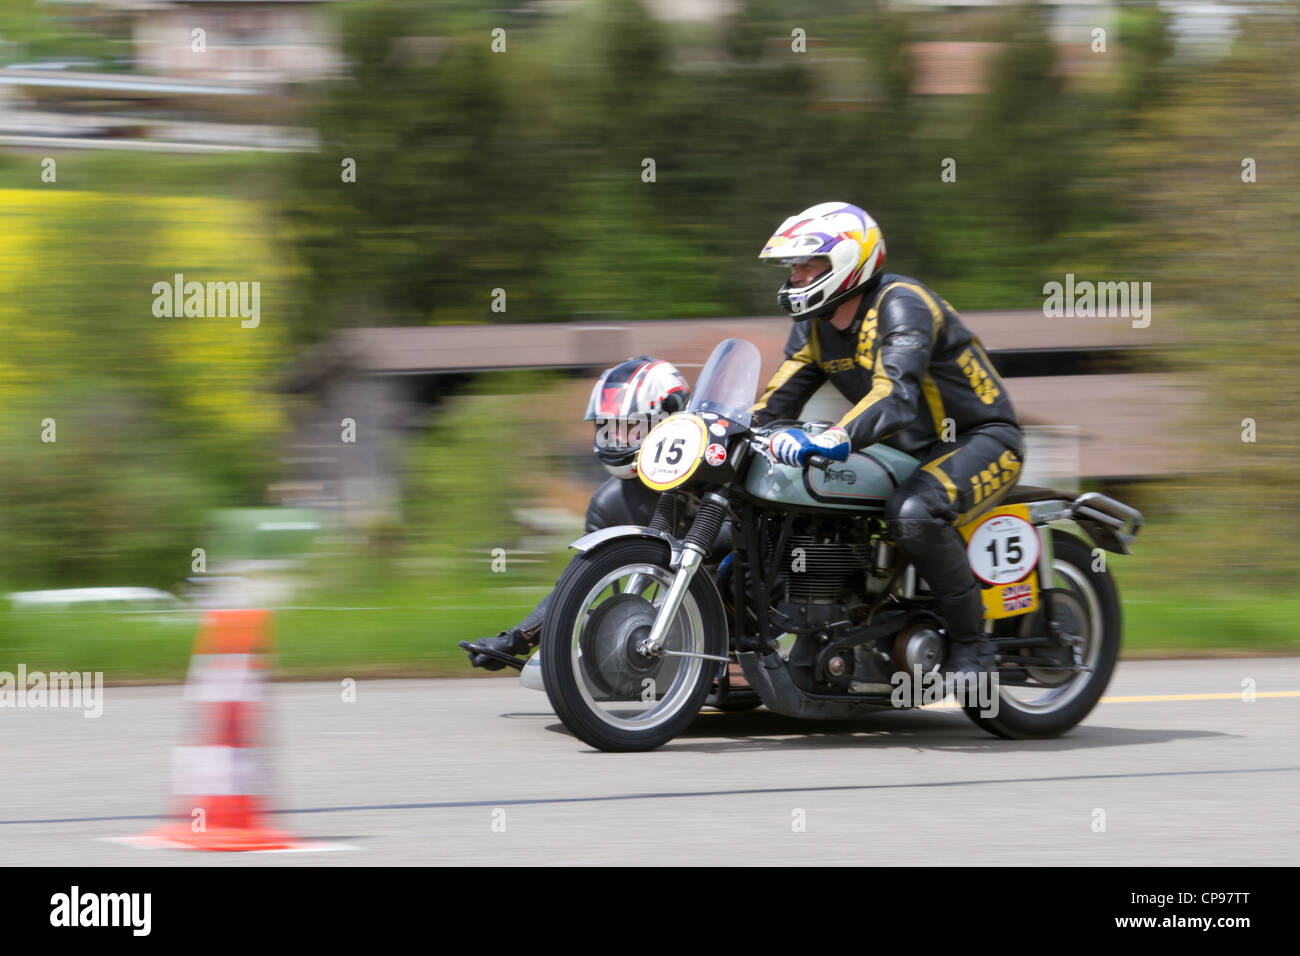 vintage motorbike Norton Manx from 1950 on display at Grand Prix in Mutschellen, SUI on April 29, 2012. - Stock Image